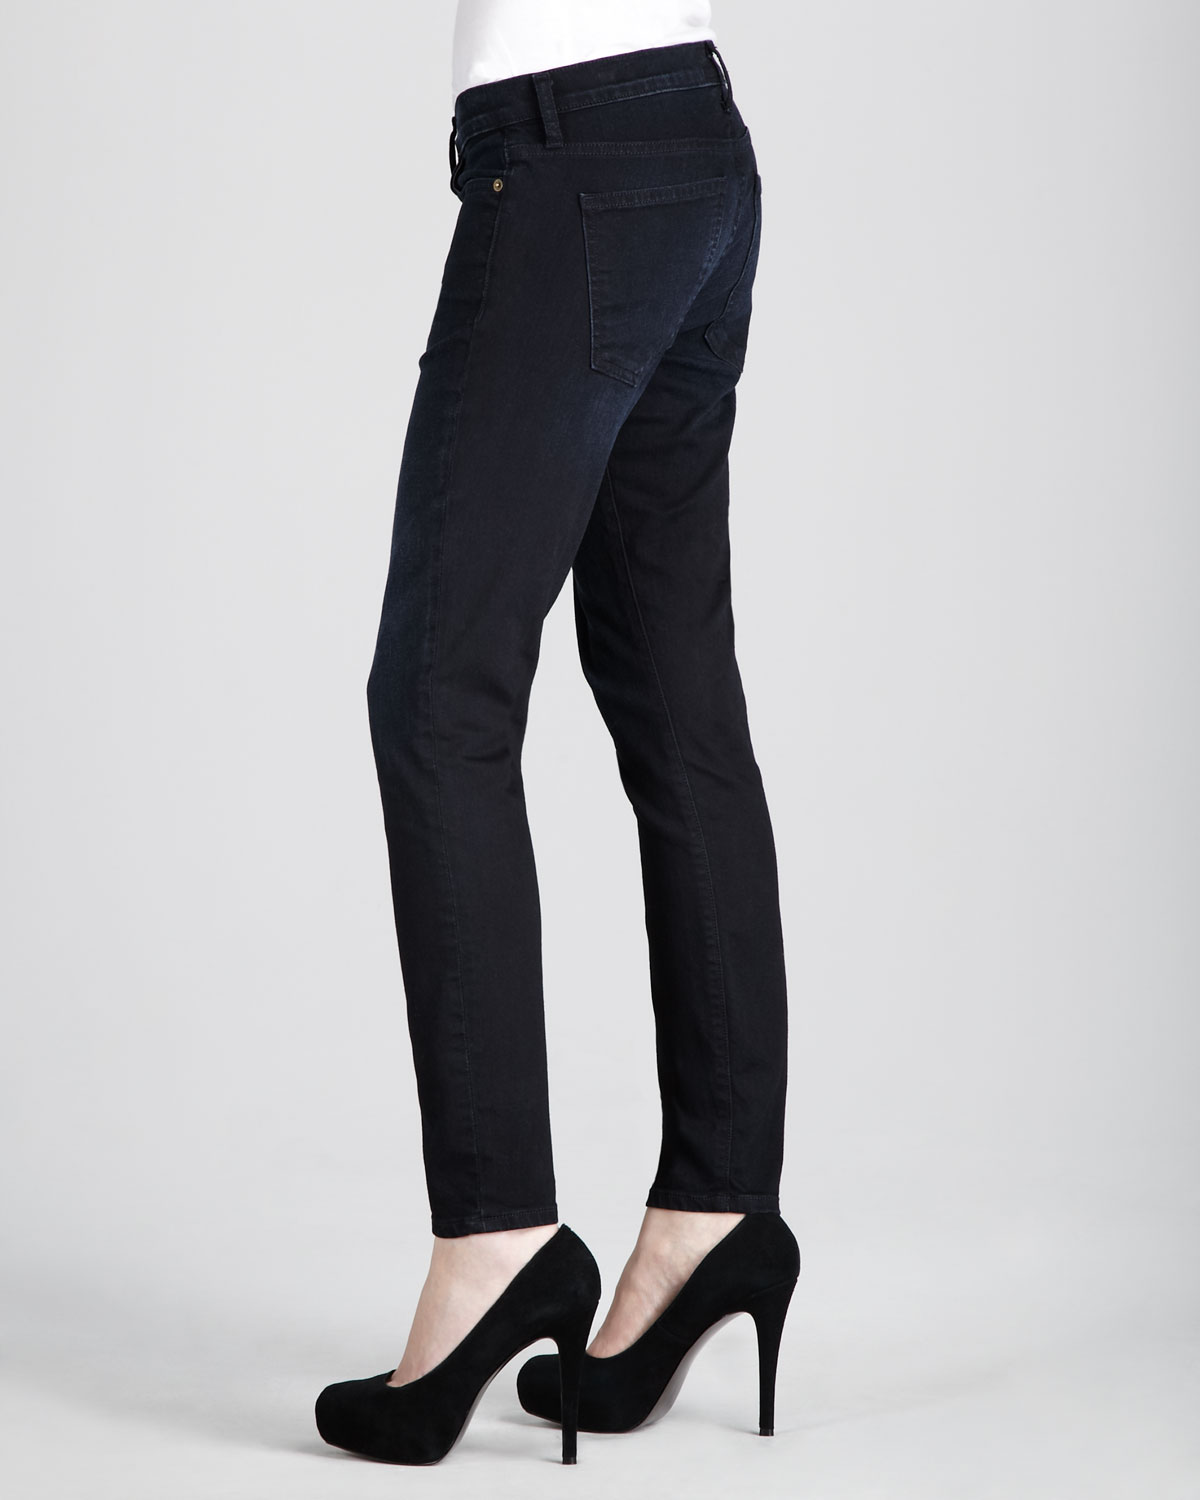 Book Cover Black Jeans : Current elliott the stiletto jeans black book in lyst